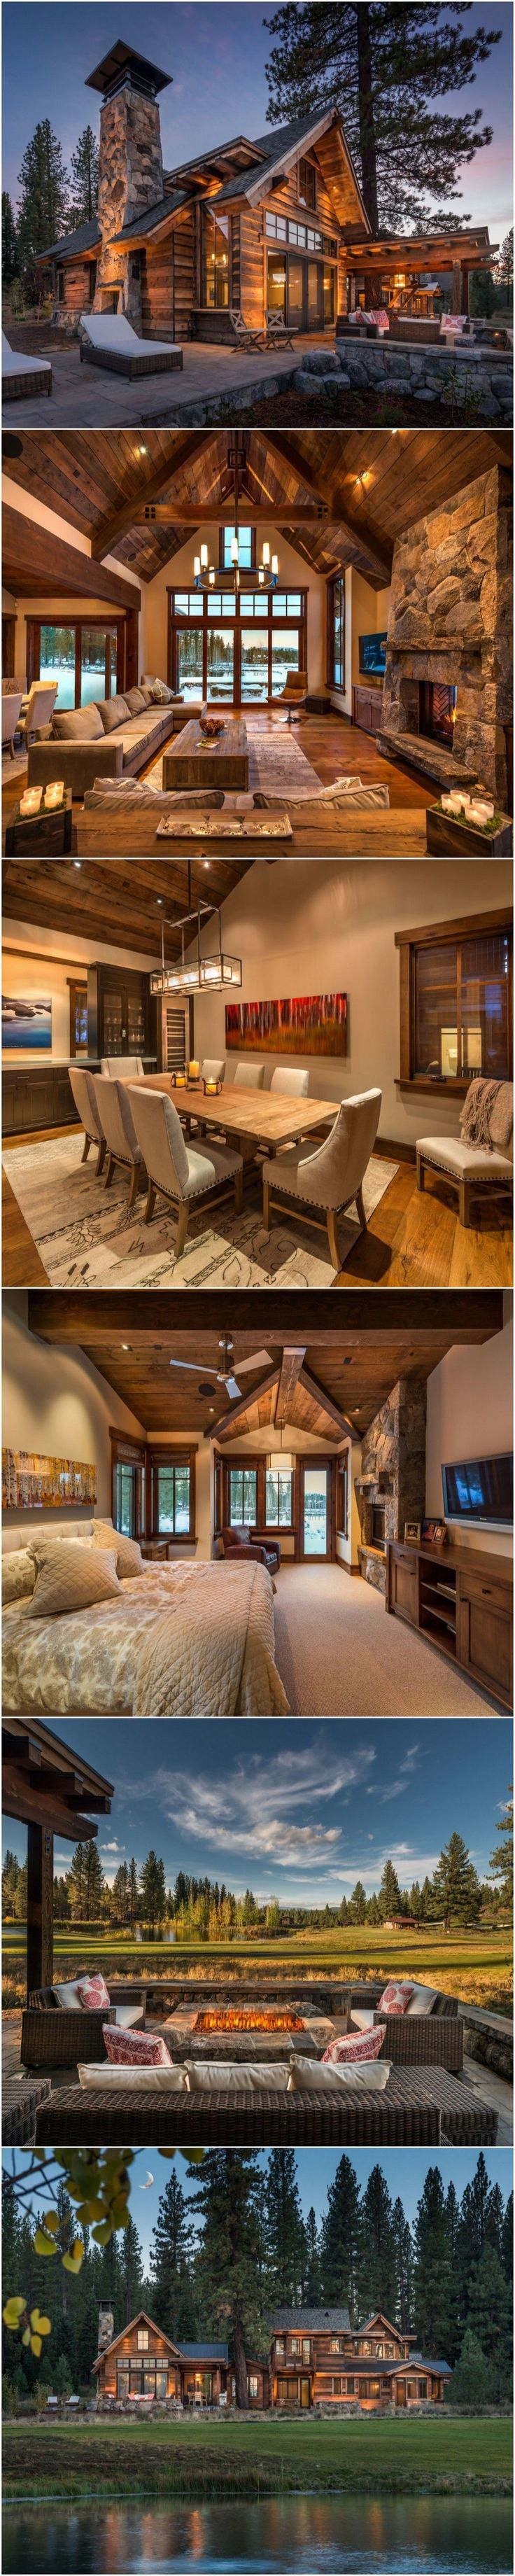 Flawless 50+ Best Cabin Style Design Ideas https://decoratio.co/2017/06/14/50-best-cabin-style-design-ideas/ There are two cuts for two corners. Nearly every part of furniture can be created in a rustic style. With a growing number of options in log cabin style nowadays,